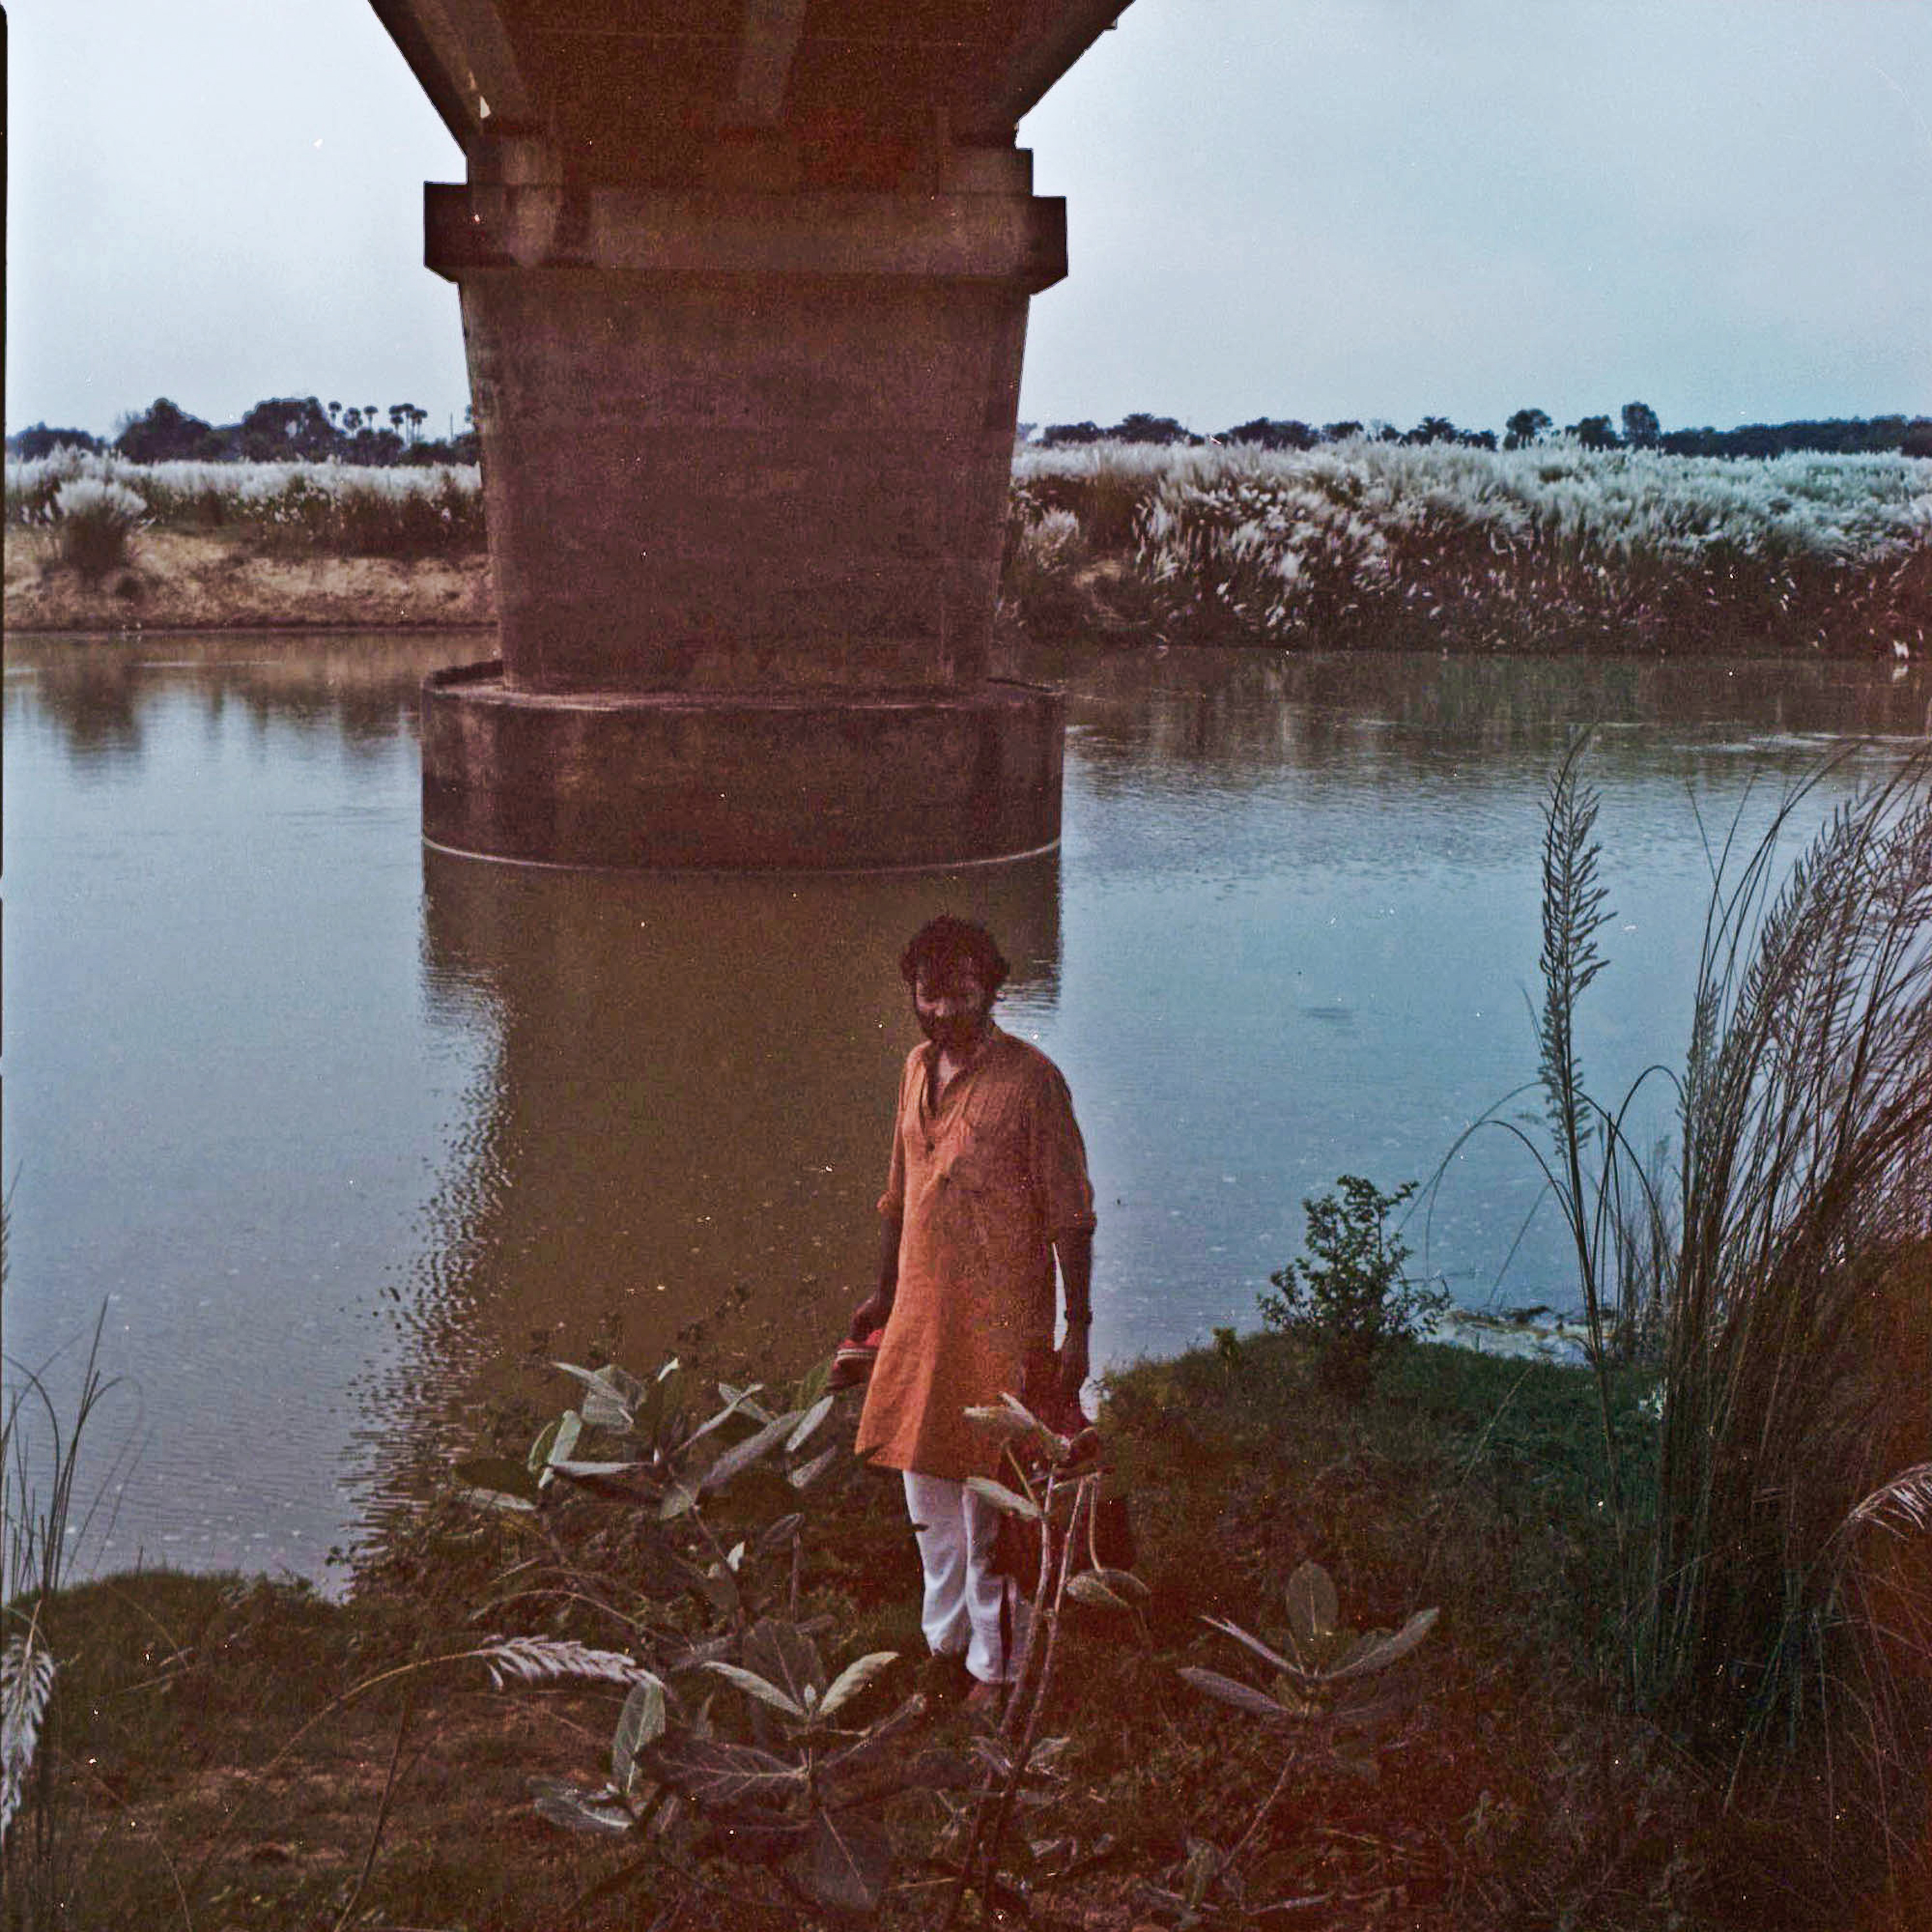 Kaushik under the bridge